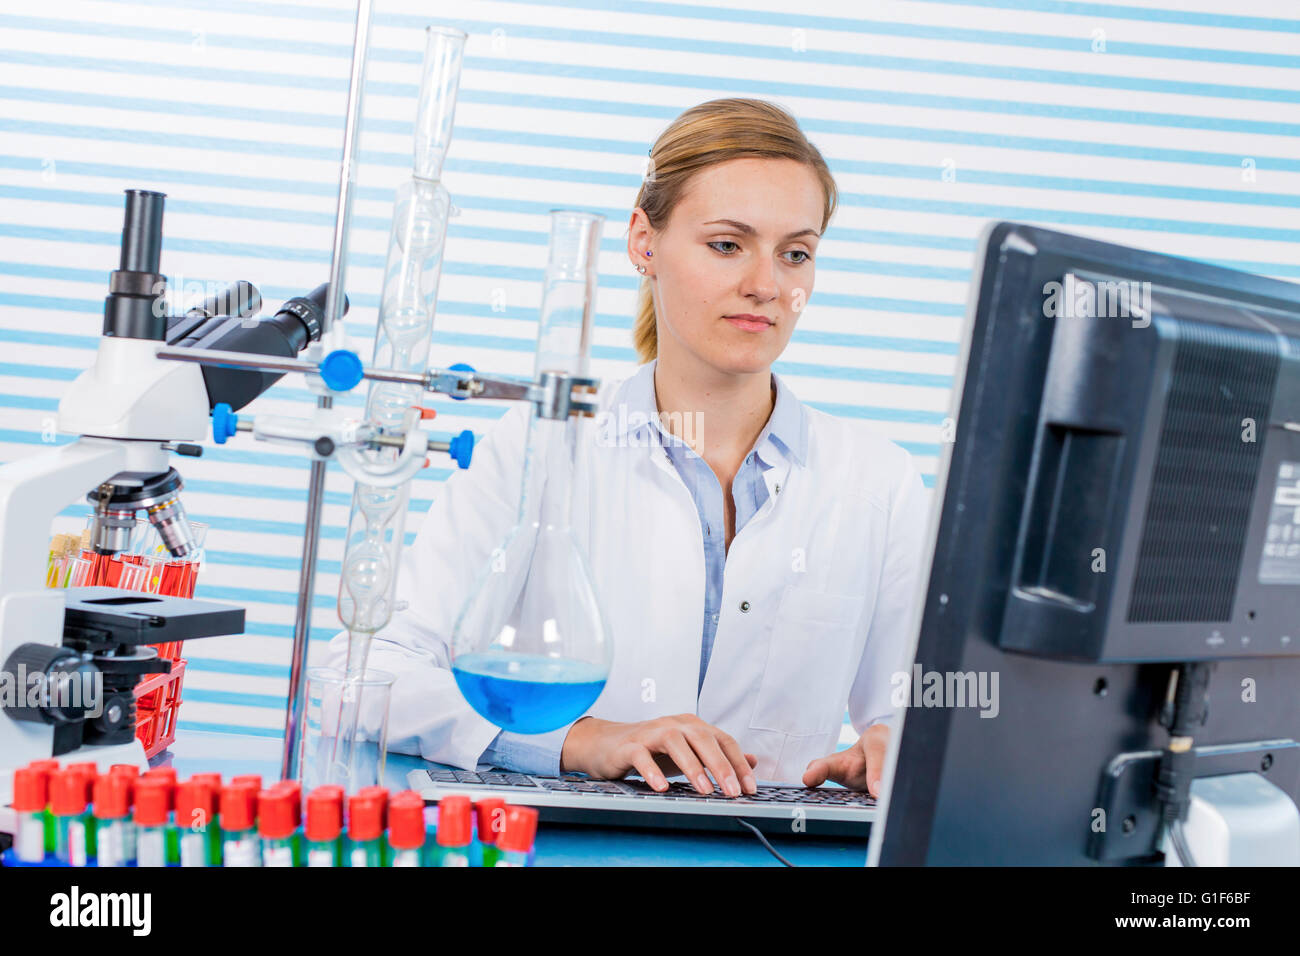 MODEL RELEASED. Female chemist using computer in the laboratory. - Stock Image